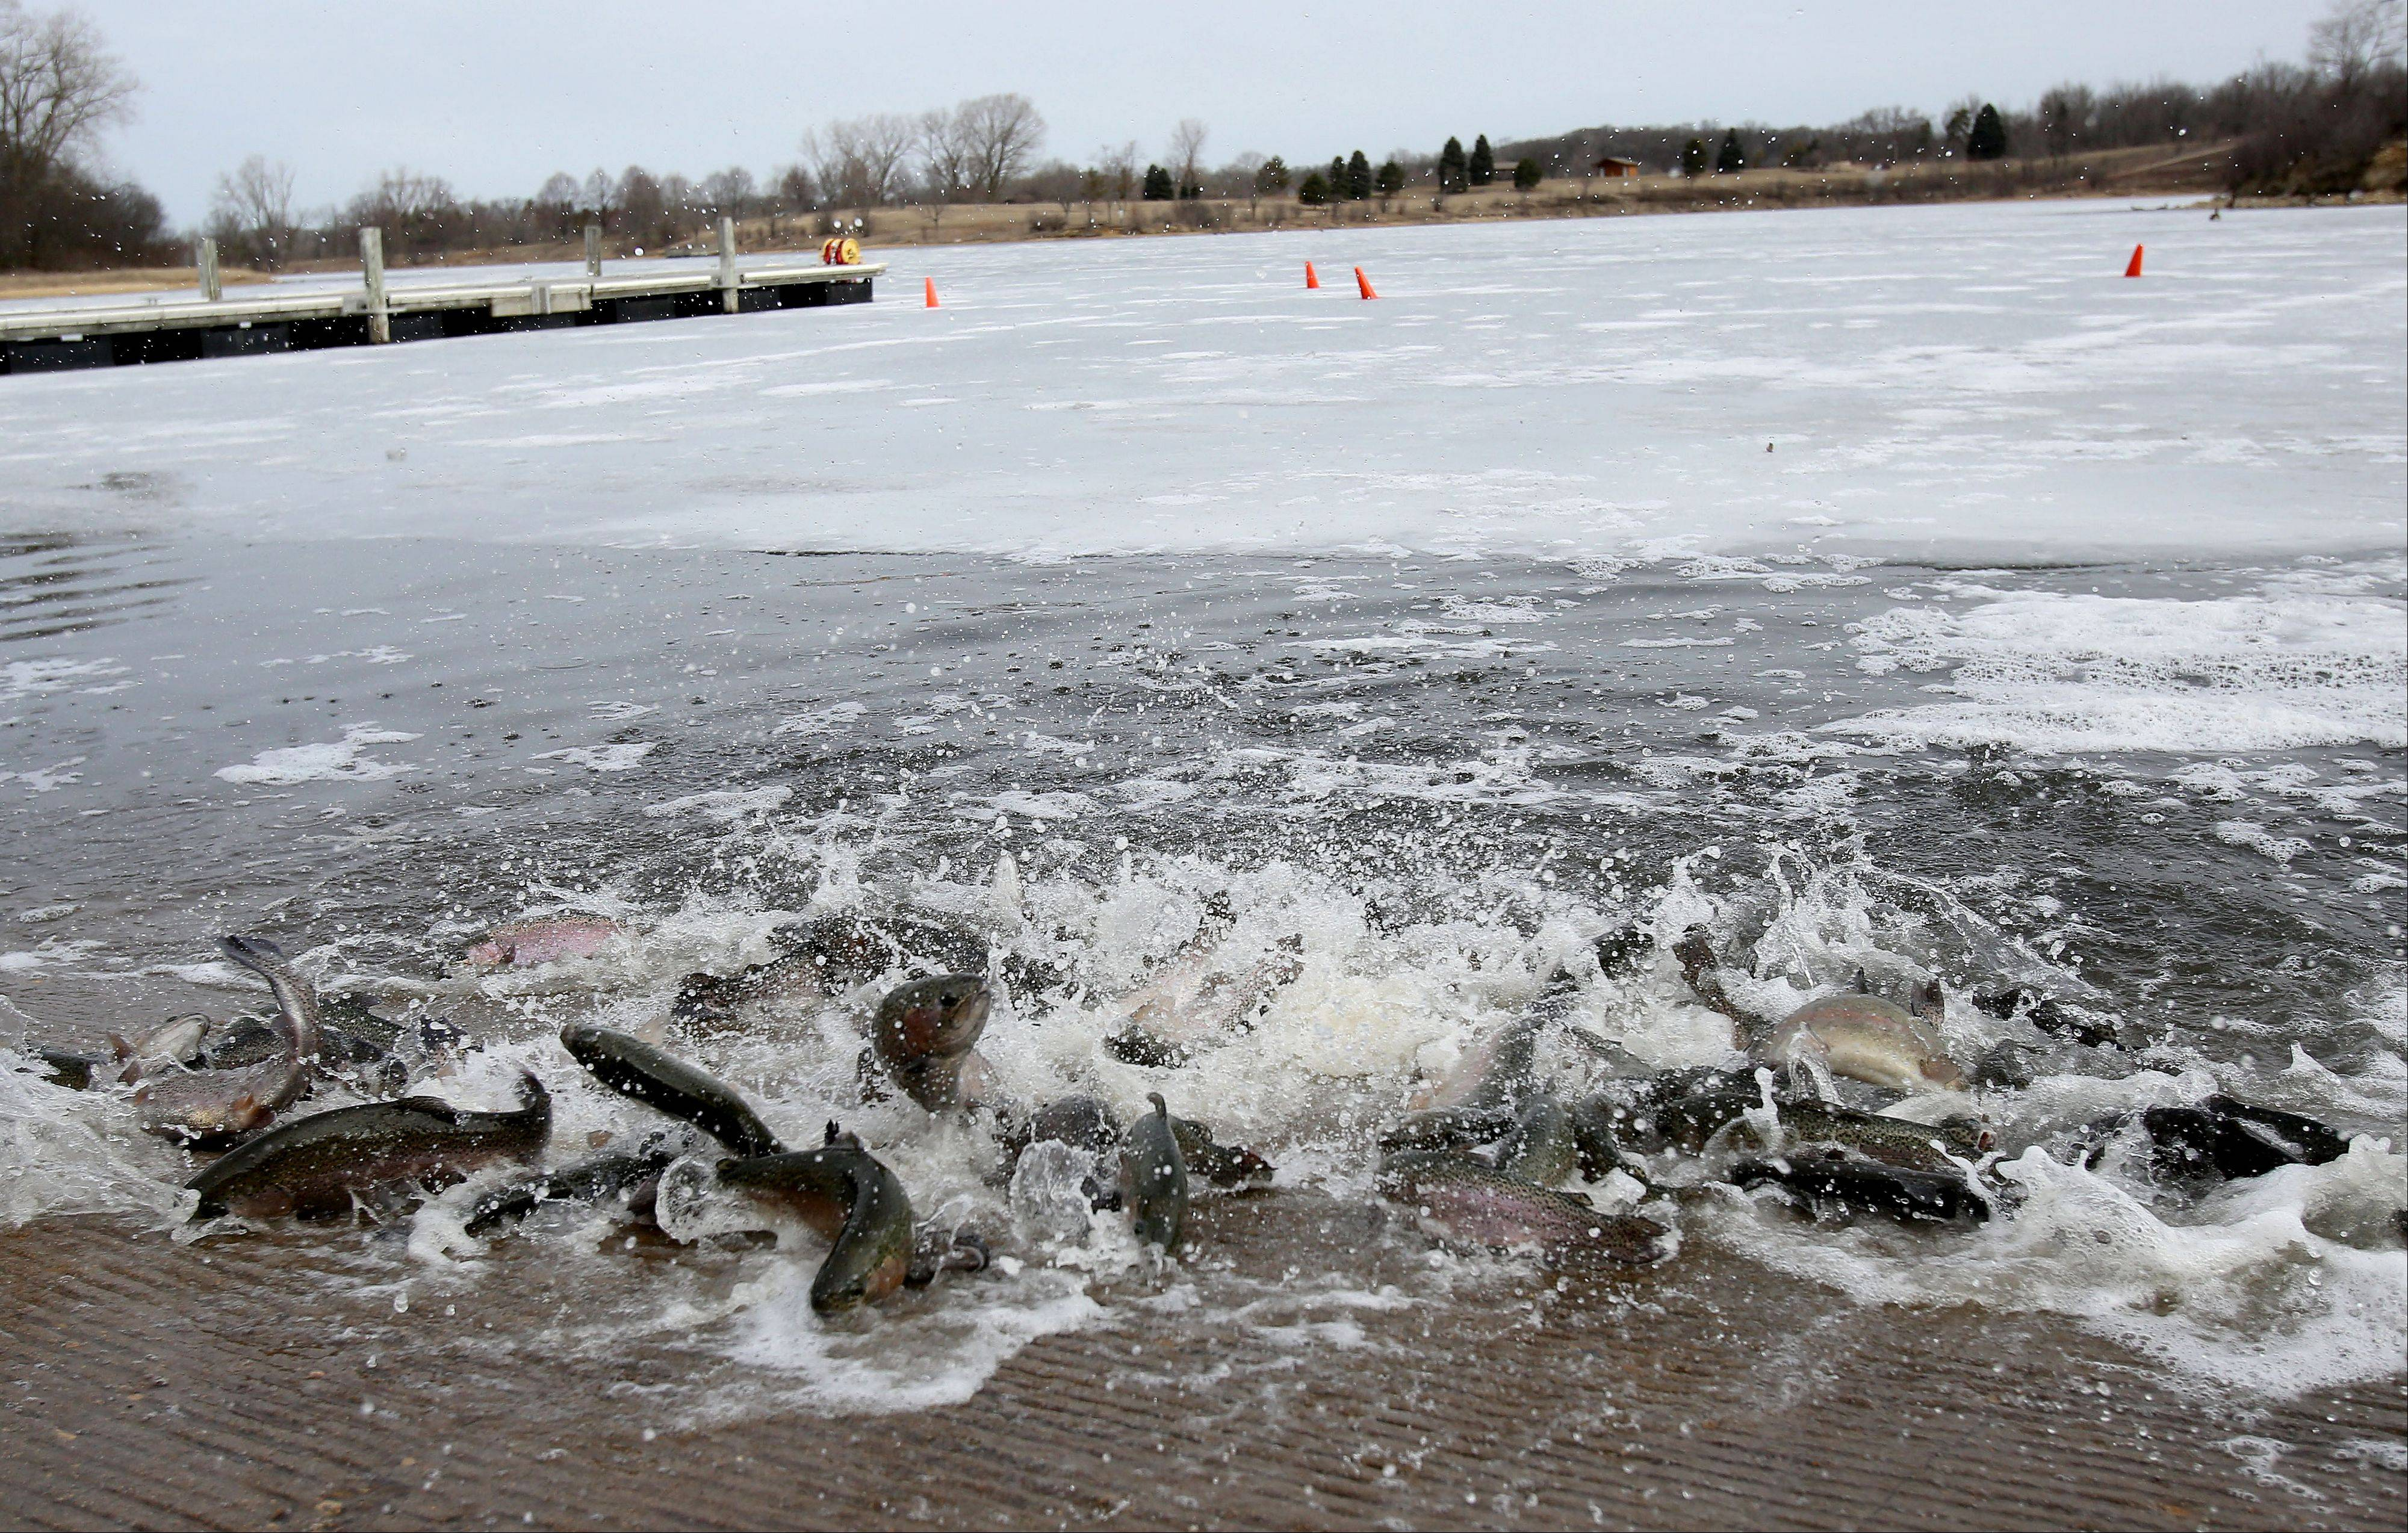 About 2,200 rainbow trout recently were released into Silver Lake at the Blackwell Forest Preserve near Warrenville to prepare for the start of the spring trout fishing season, which begins at 6 a.m. Saturday.